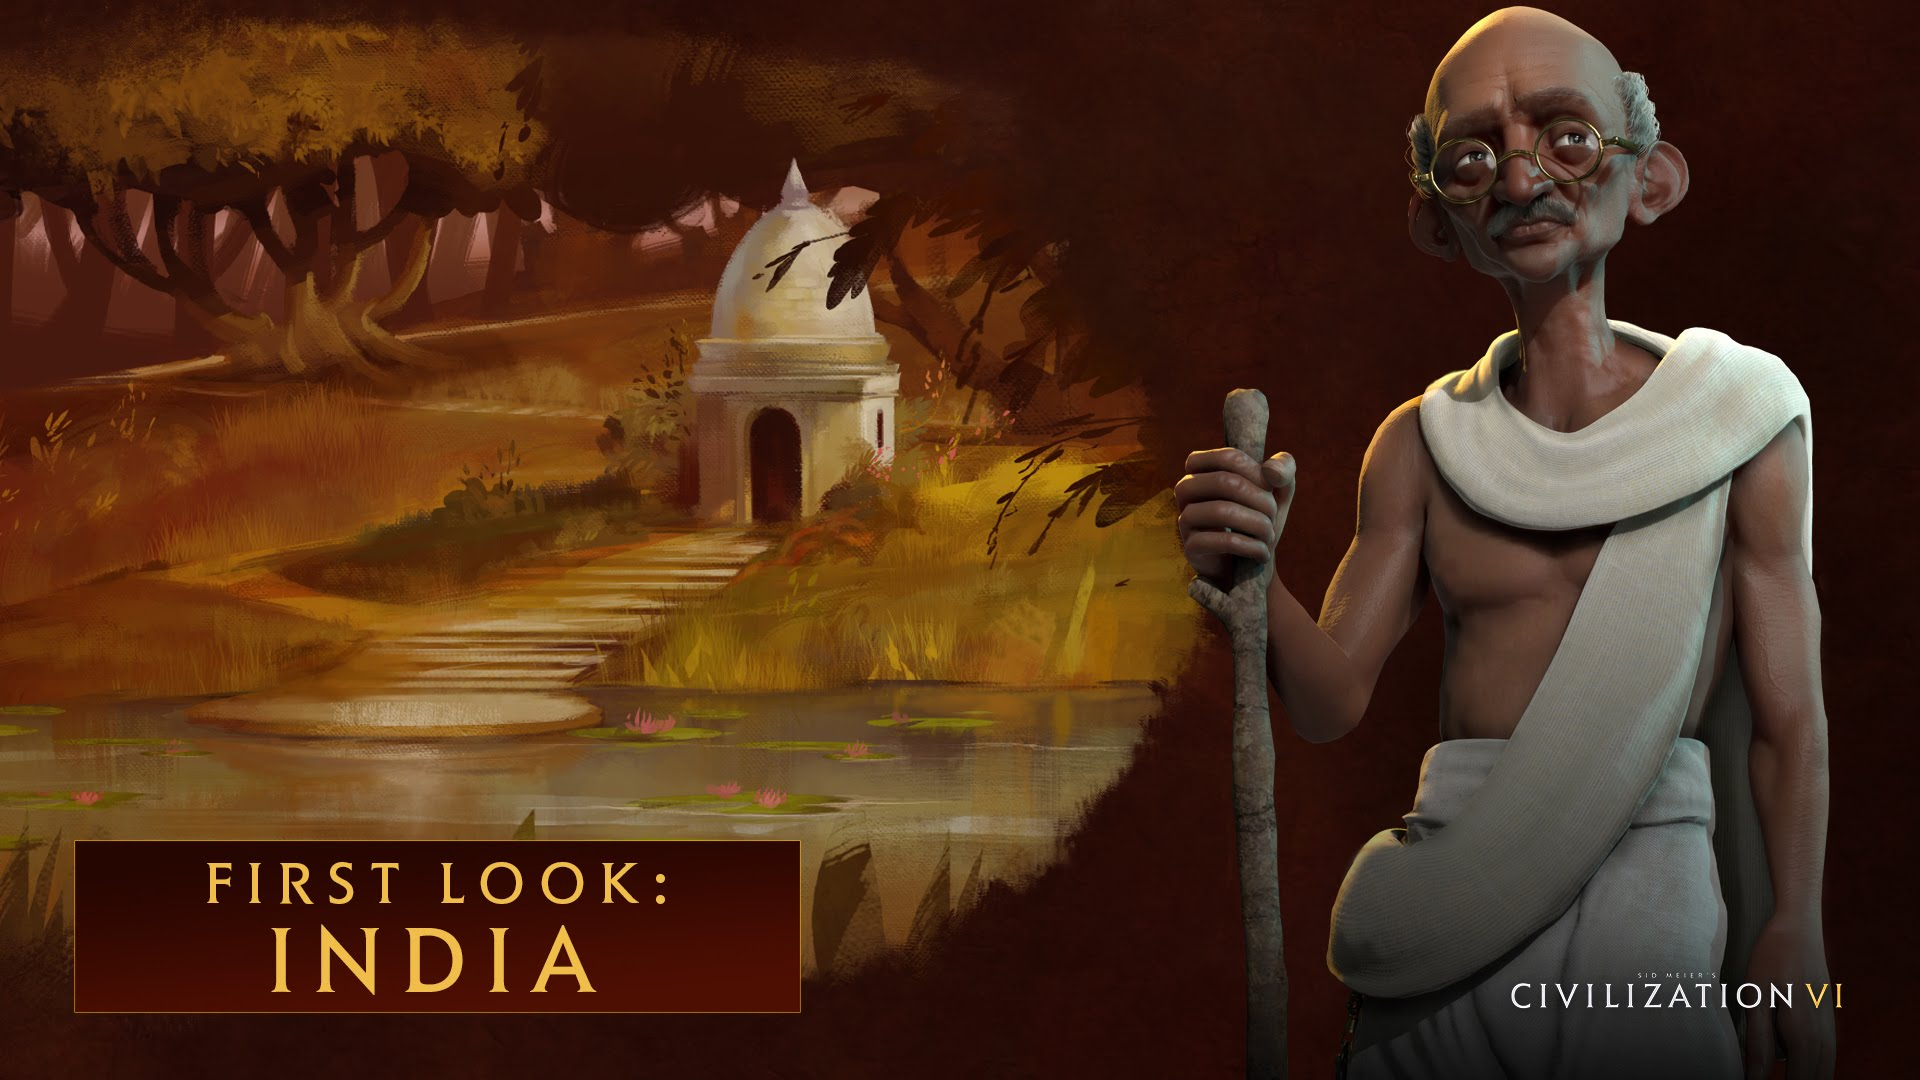 CIVILIZATION VI - FIRST LOOK: INDIA